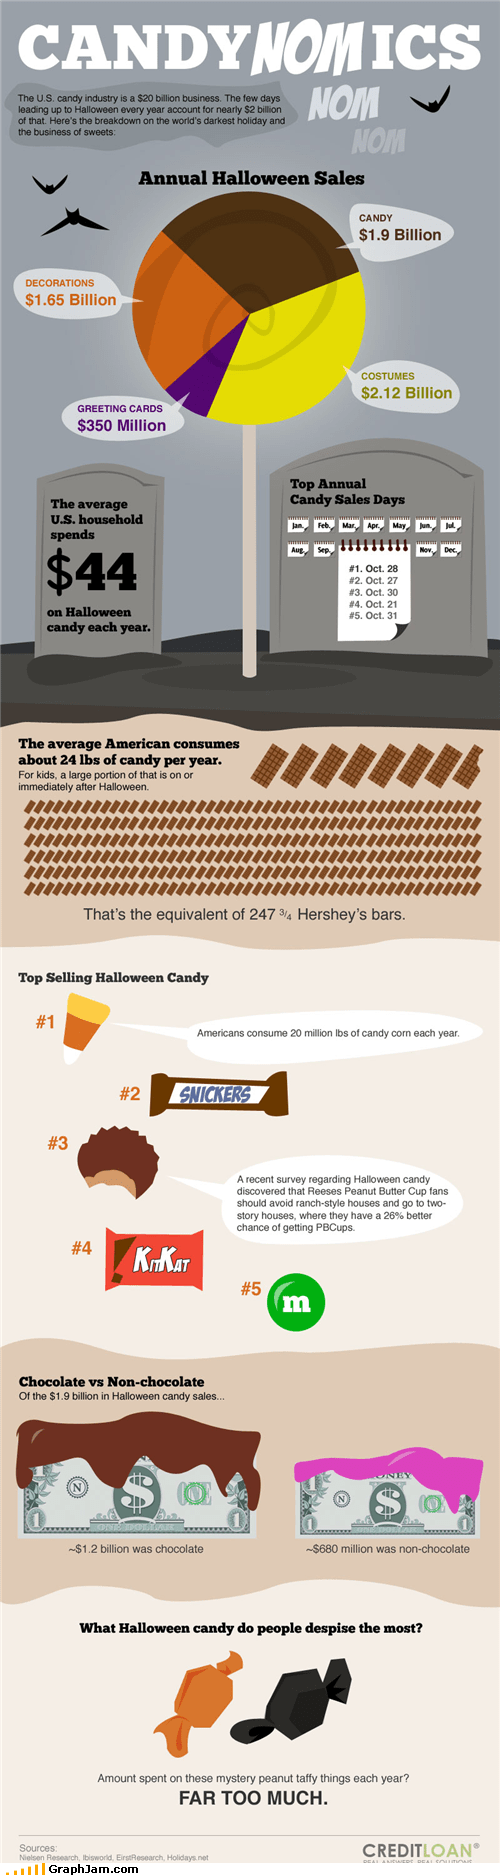 candy chocolate halloween infographic - 5355750400